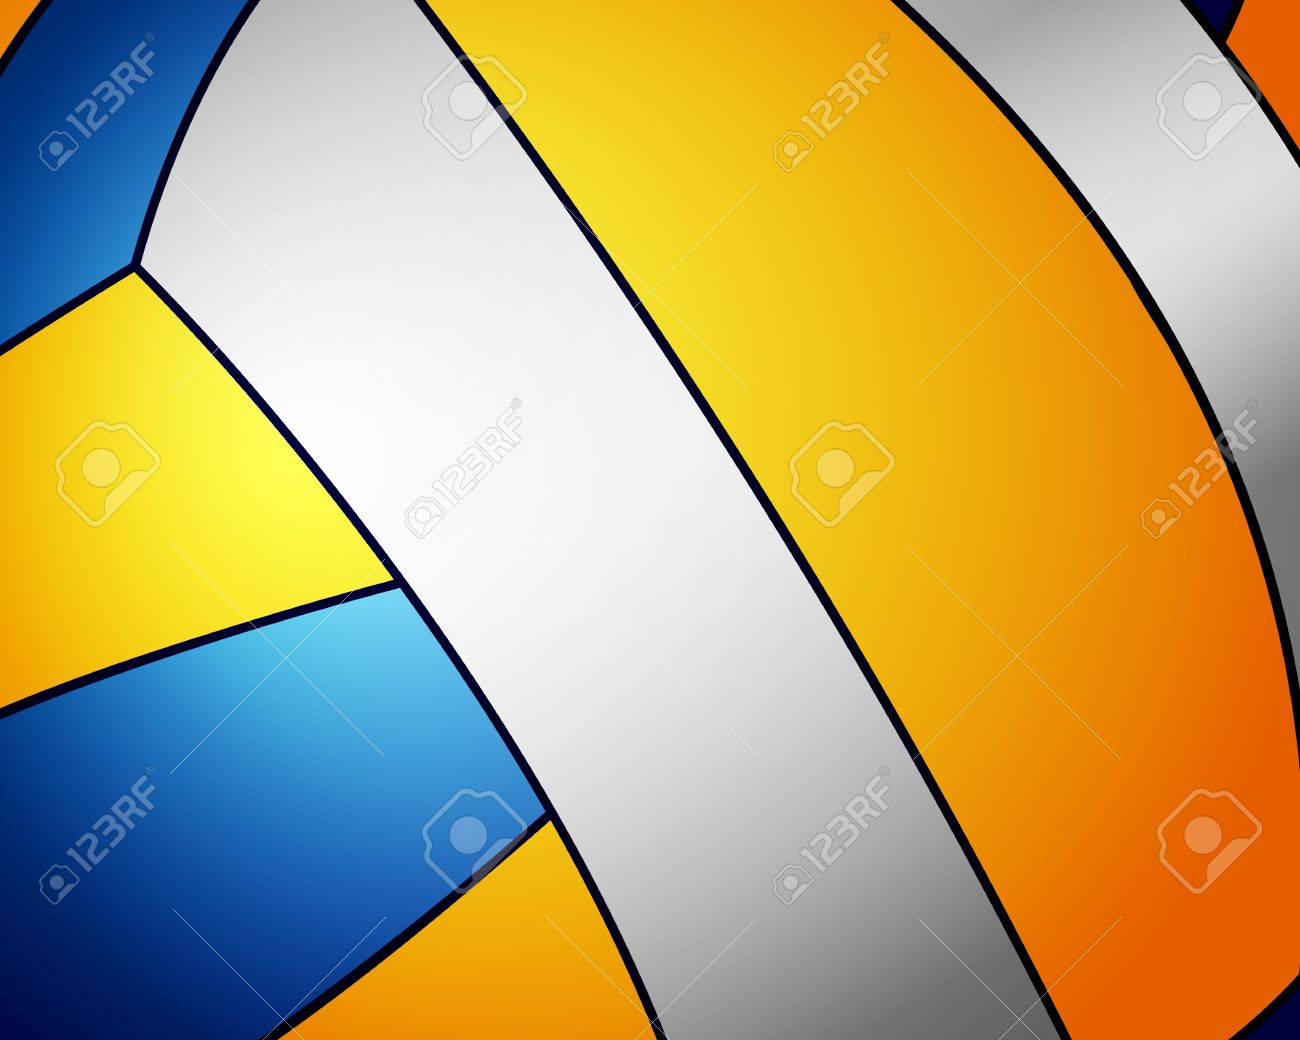 15481031-Volley-ball-d-tail-ballon-de-cuir-texture-de-fond-Banque-d'images